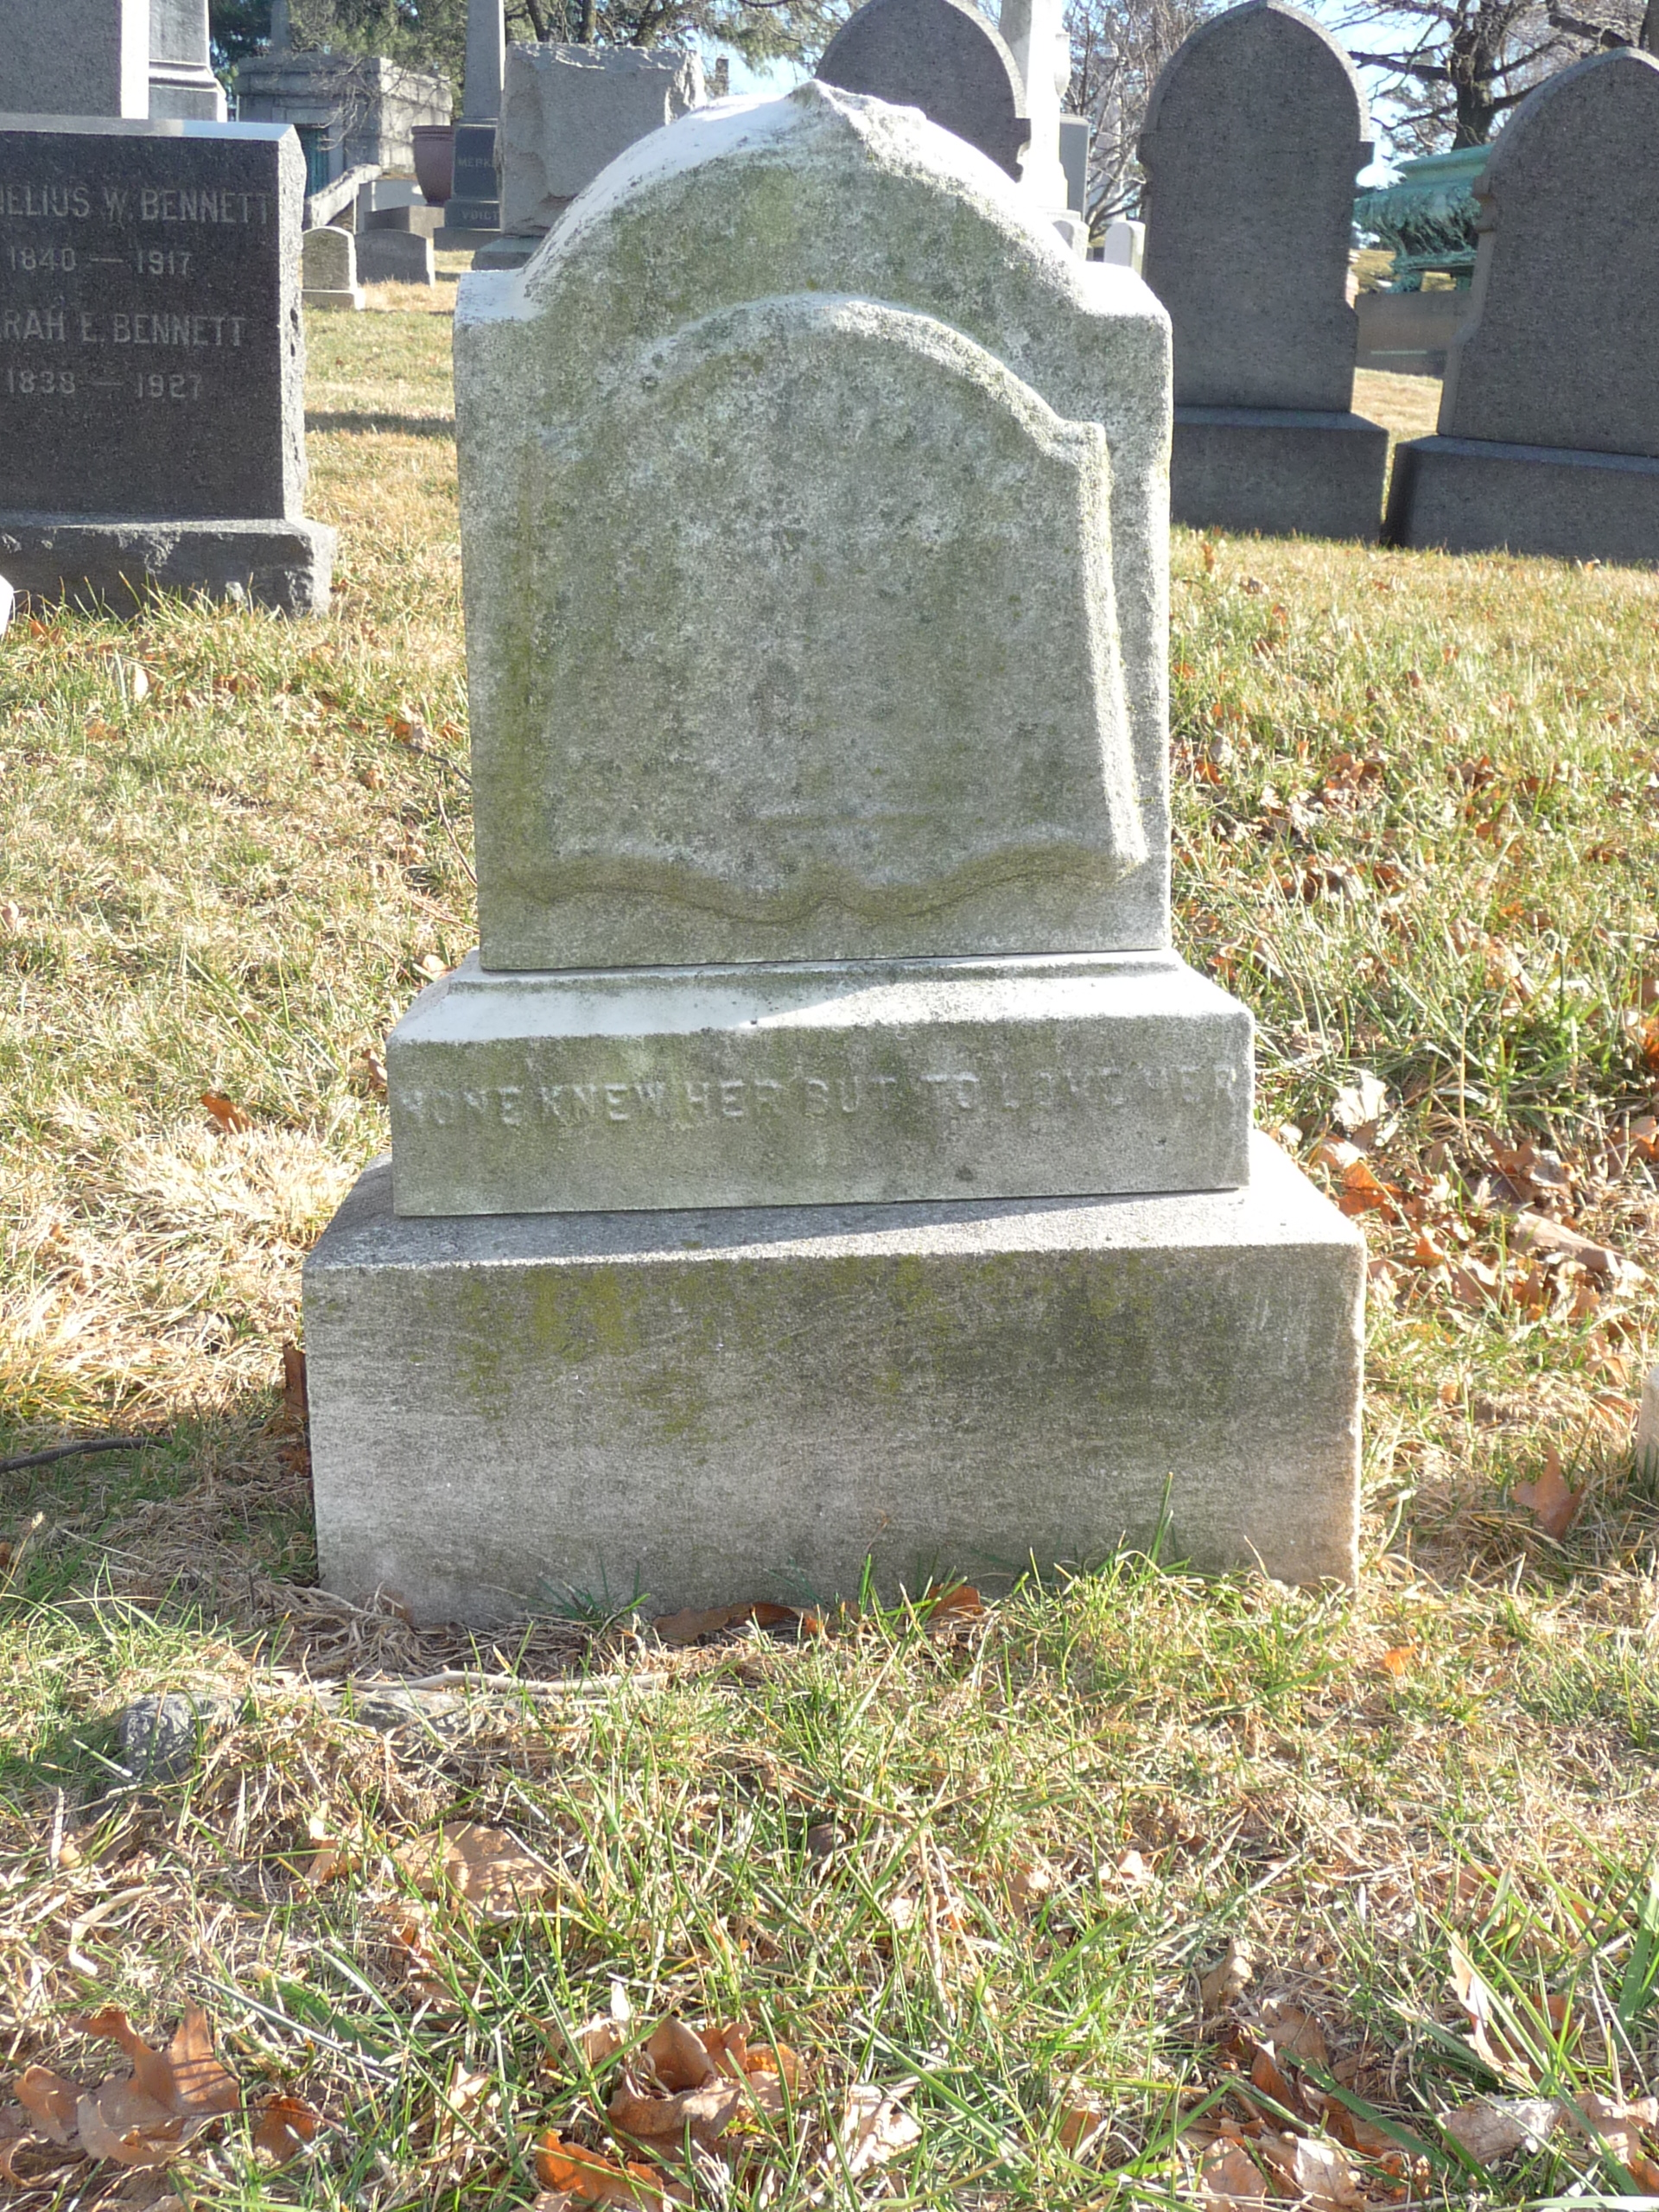 Number 1 Cochran >> A Photographic Trip To Green-Wood Cemetery Part 1